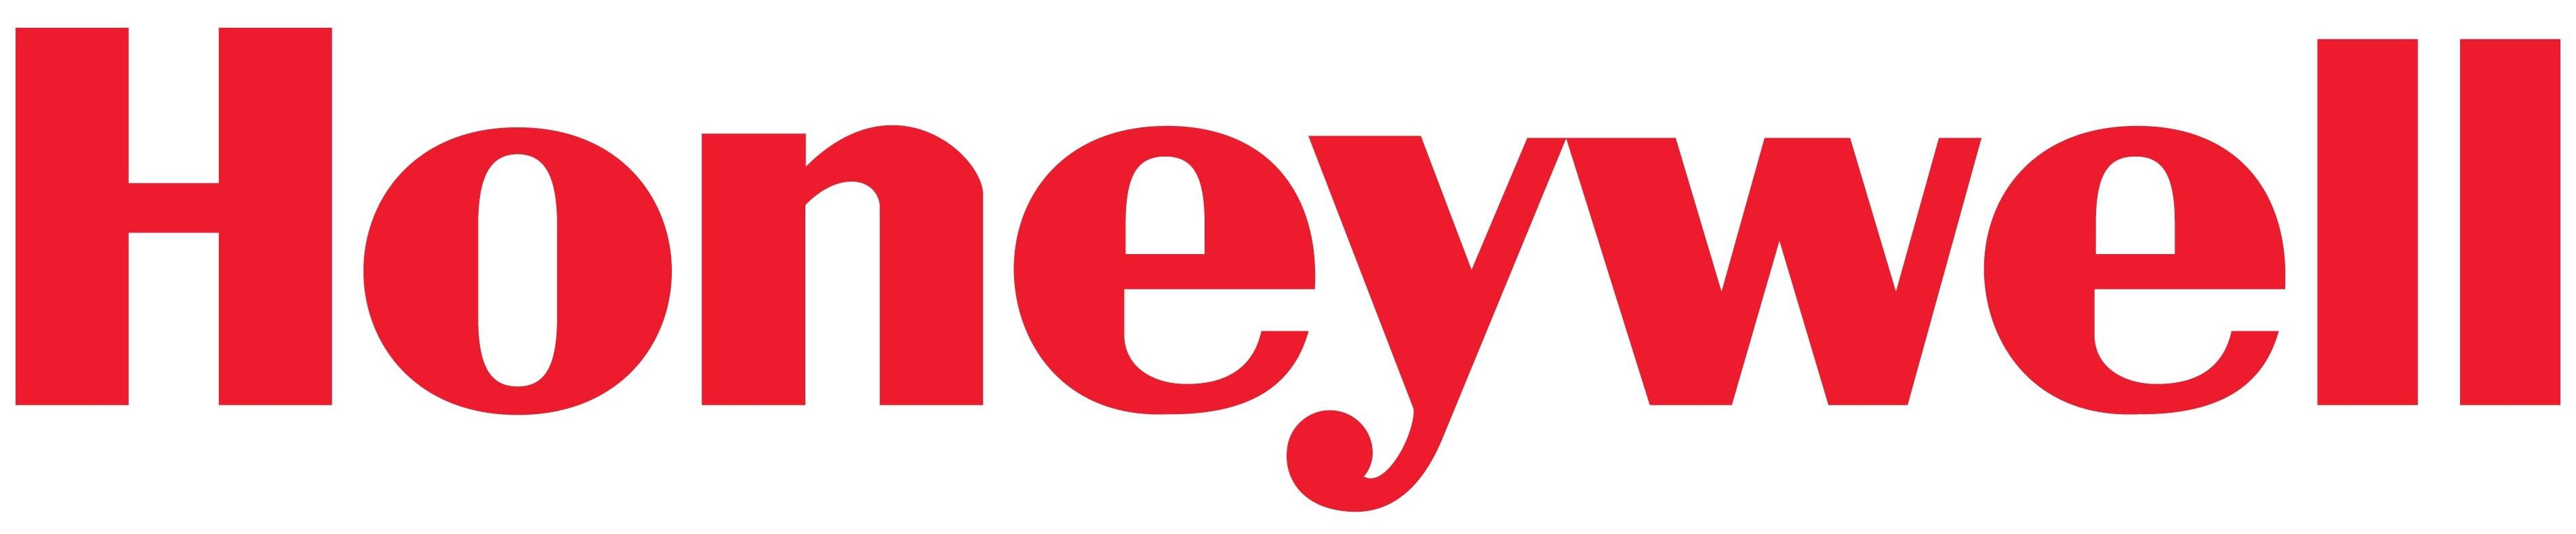 Honeywell_logo-e1459948062834